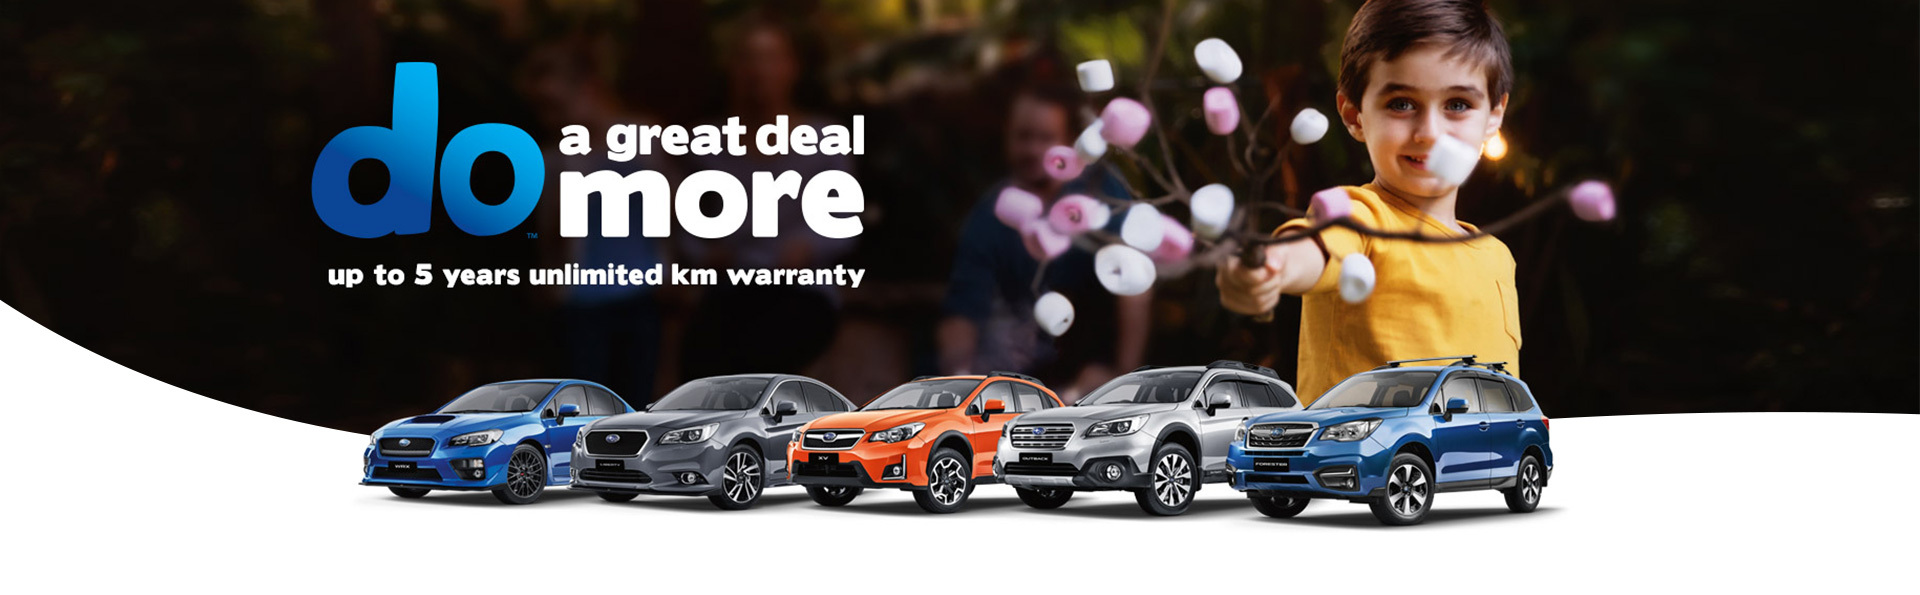 Subaru - National Offer - A Great Deal More, 5 years unlimited km warranty